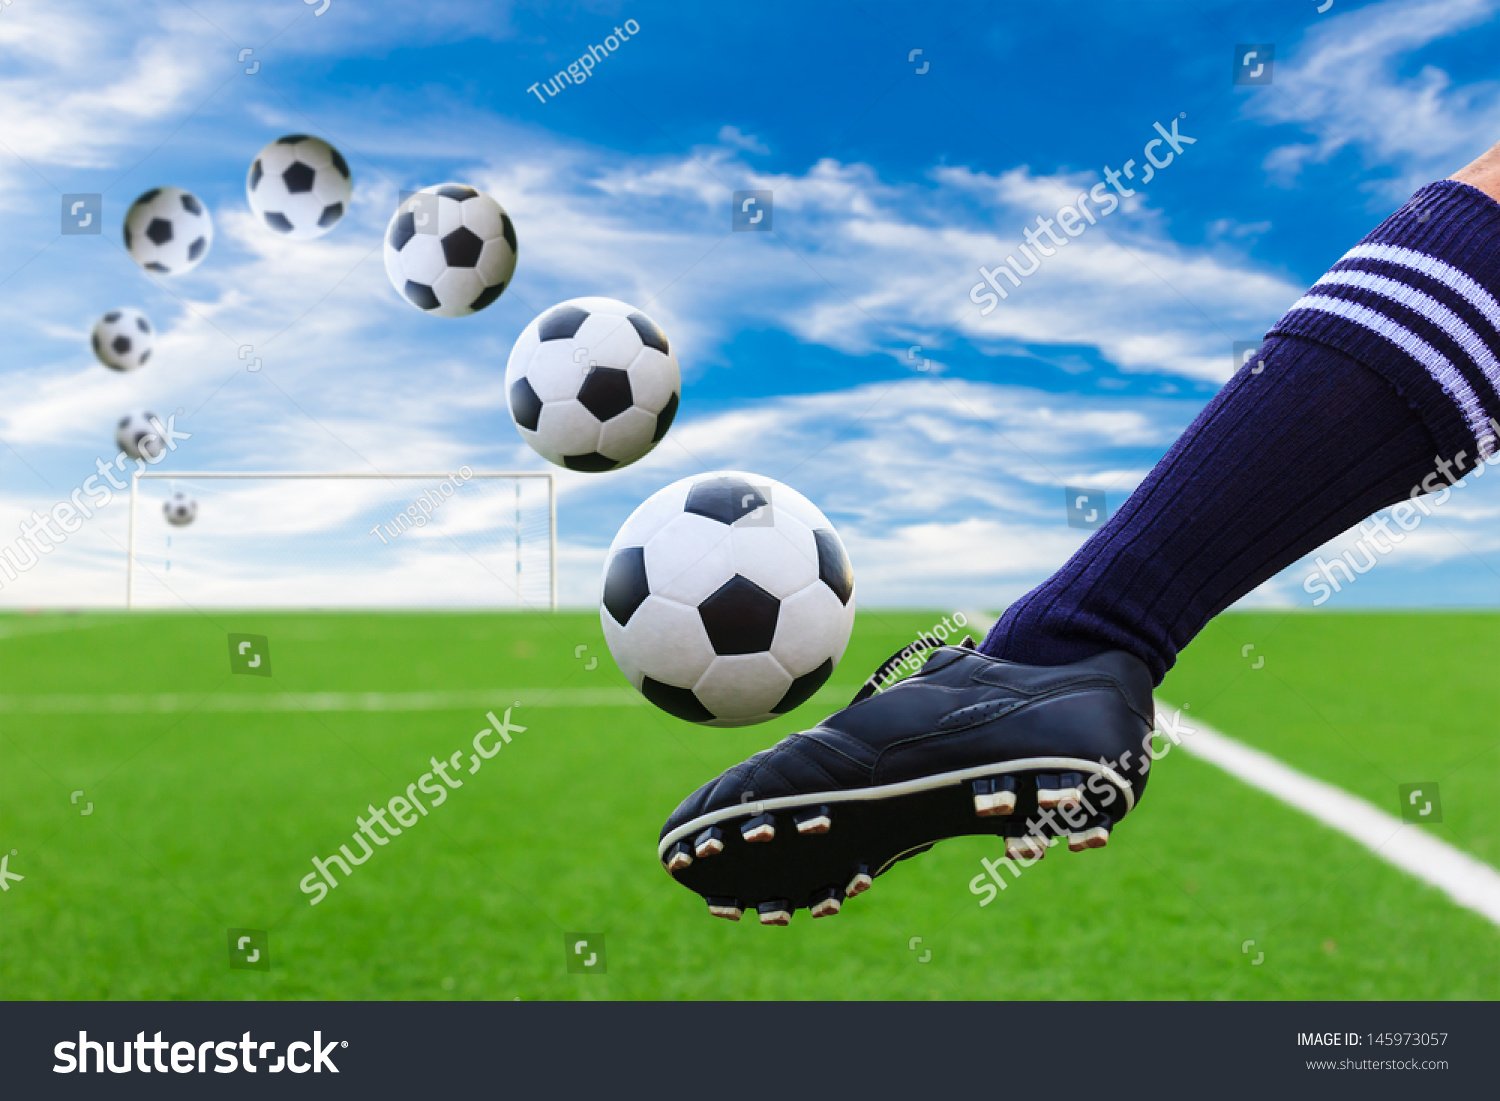 essay on how to kick a soccer ball Just kicking a ball relates to the physics of motion, the physic of friction, and even  aerodynamics so by learning the physics behind soccer, any player can.